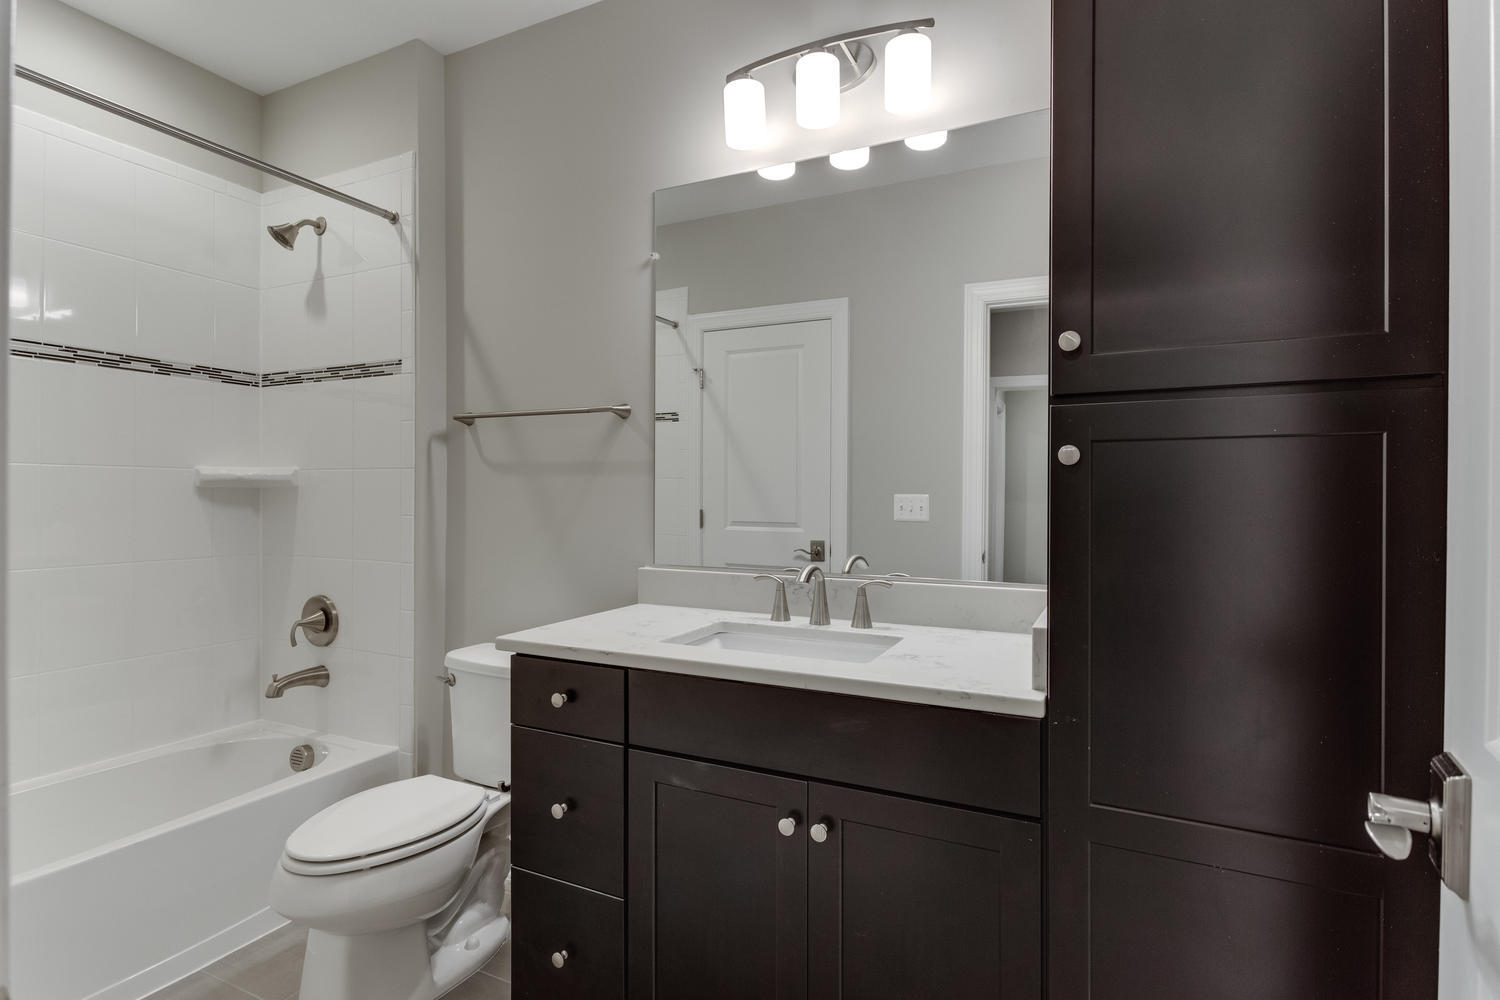 6632 Hallwood Ave Falls Church-large-077-91-Bathroom-1500x1000-72dpi